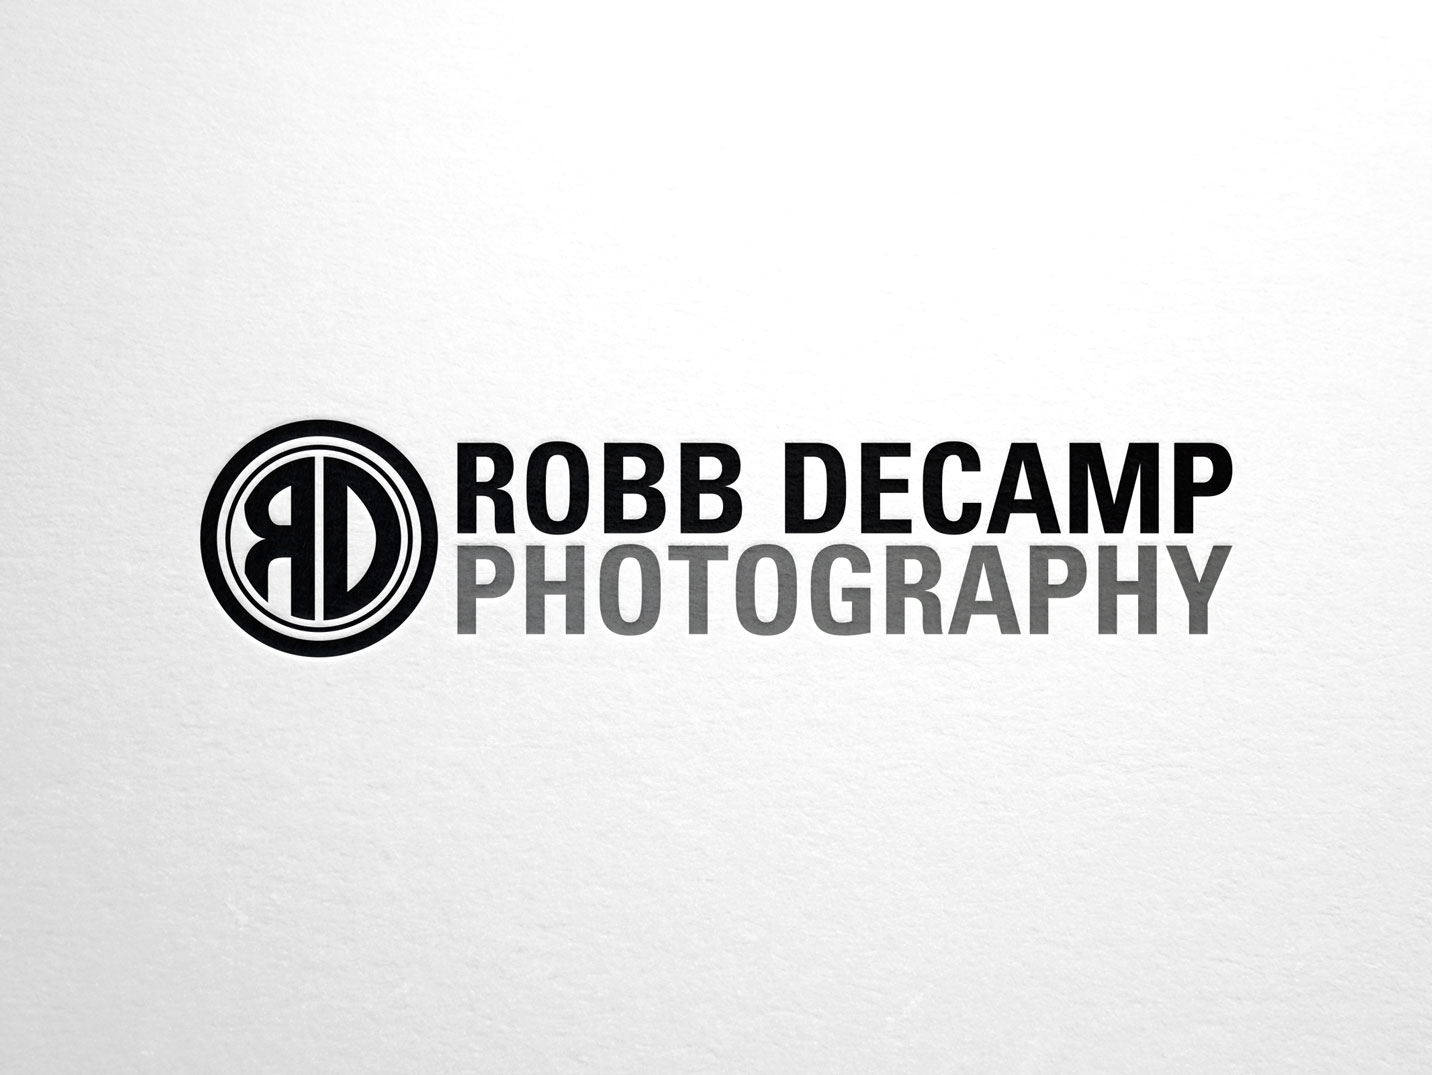 Robb DeCamp Photography Branding